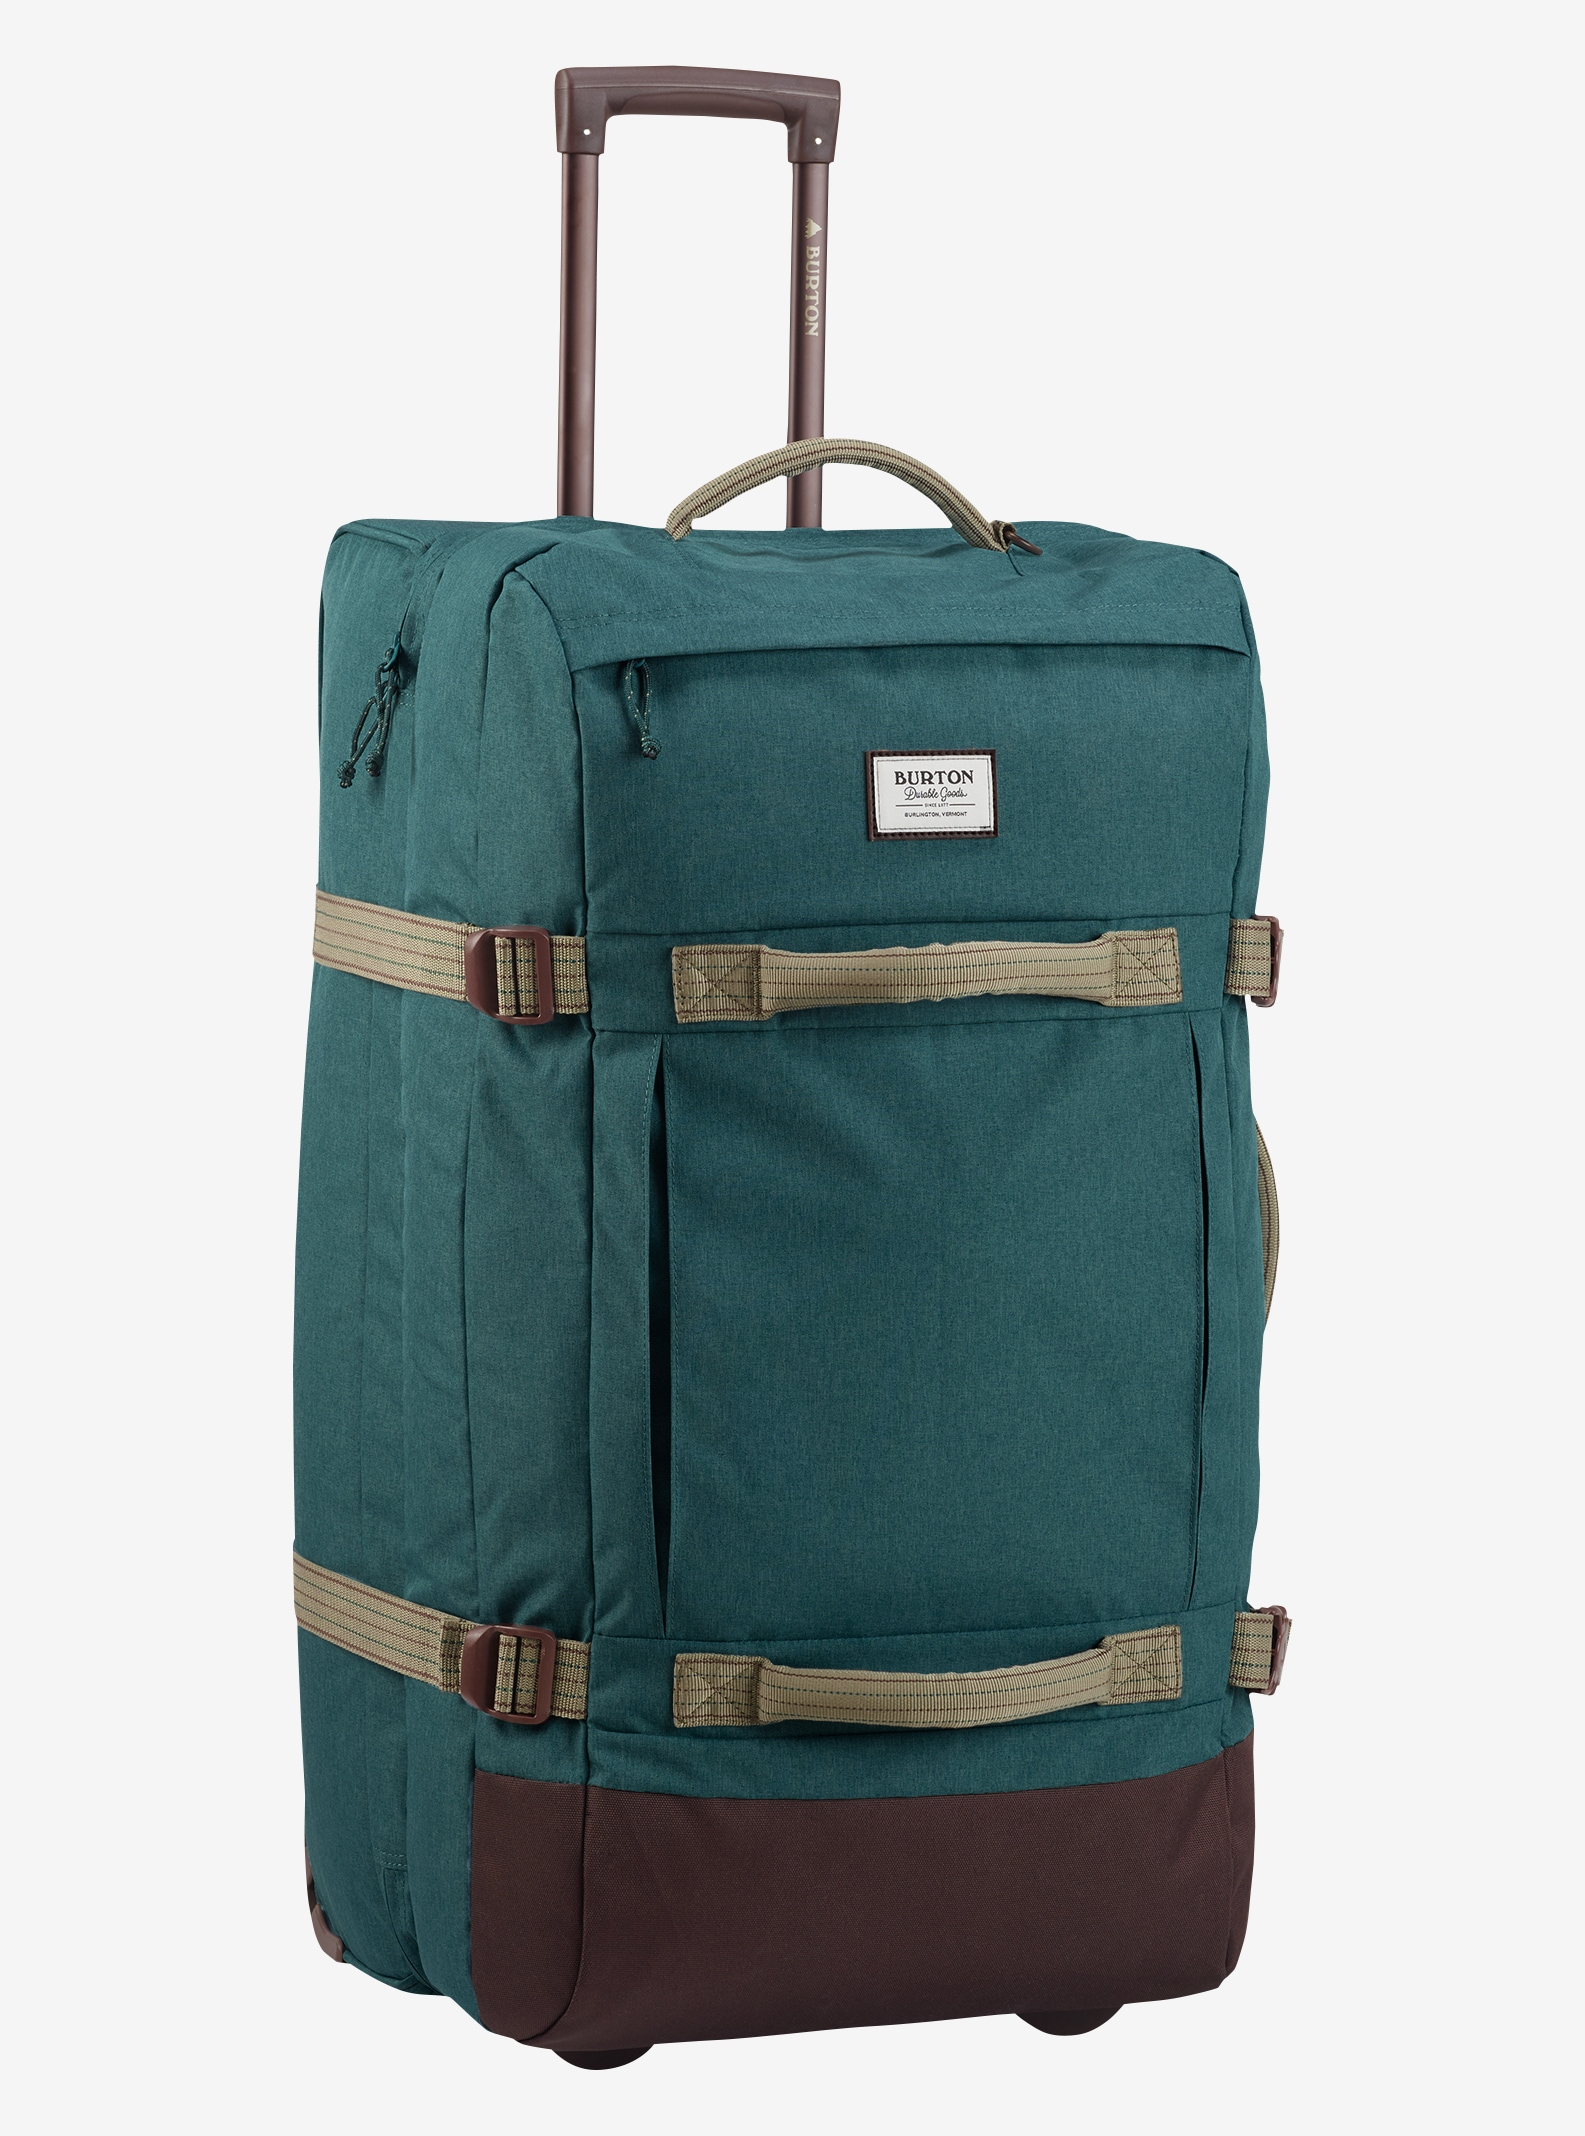 Burton Exodus Roller Travel Bag shown in Jasper Heathered Cordura®